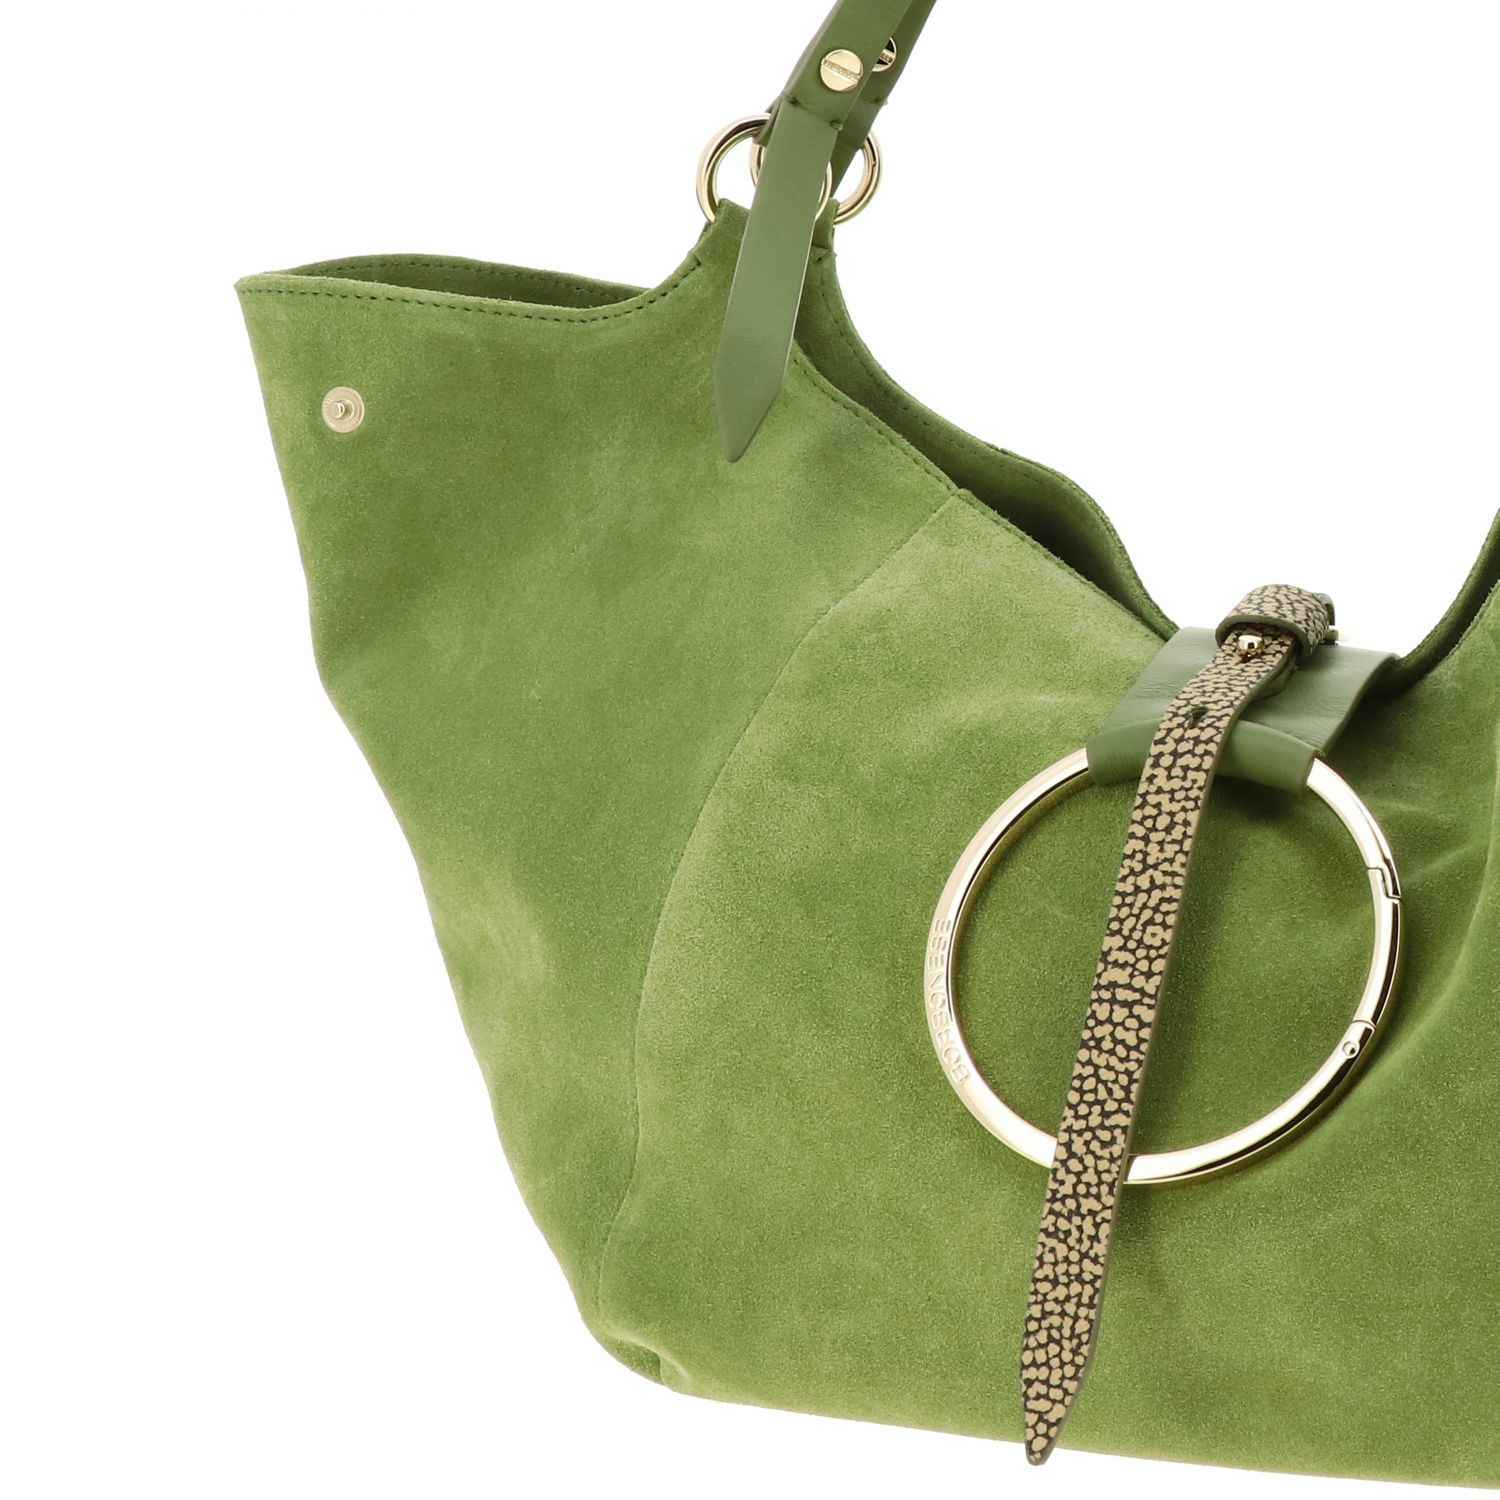 Borbonese shoulder bag in suede and leather green 4